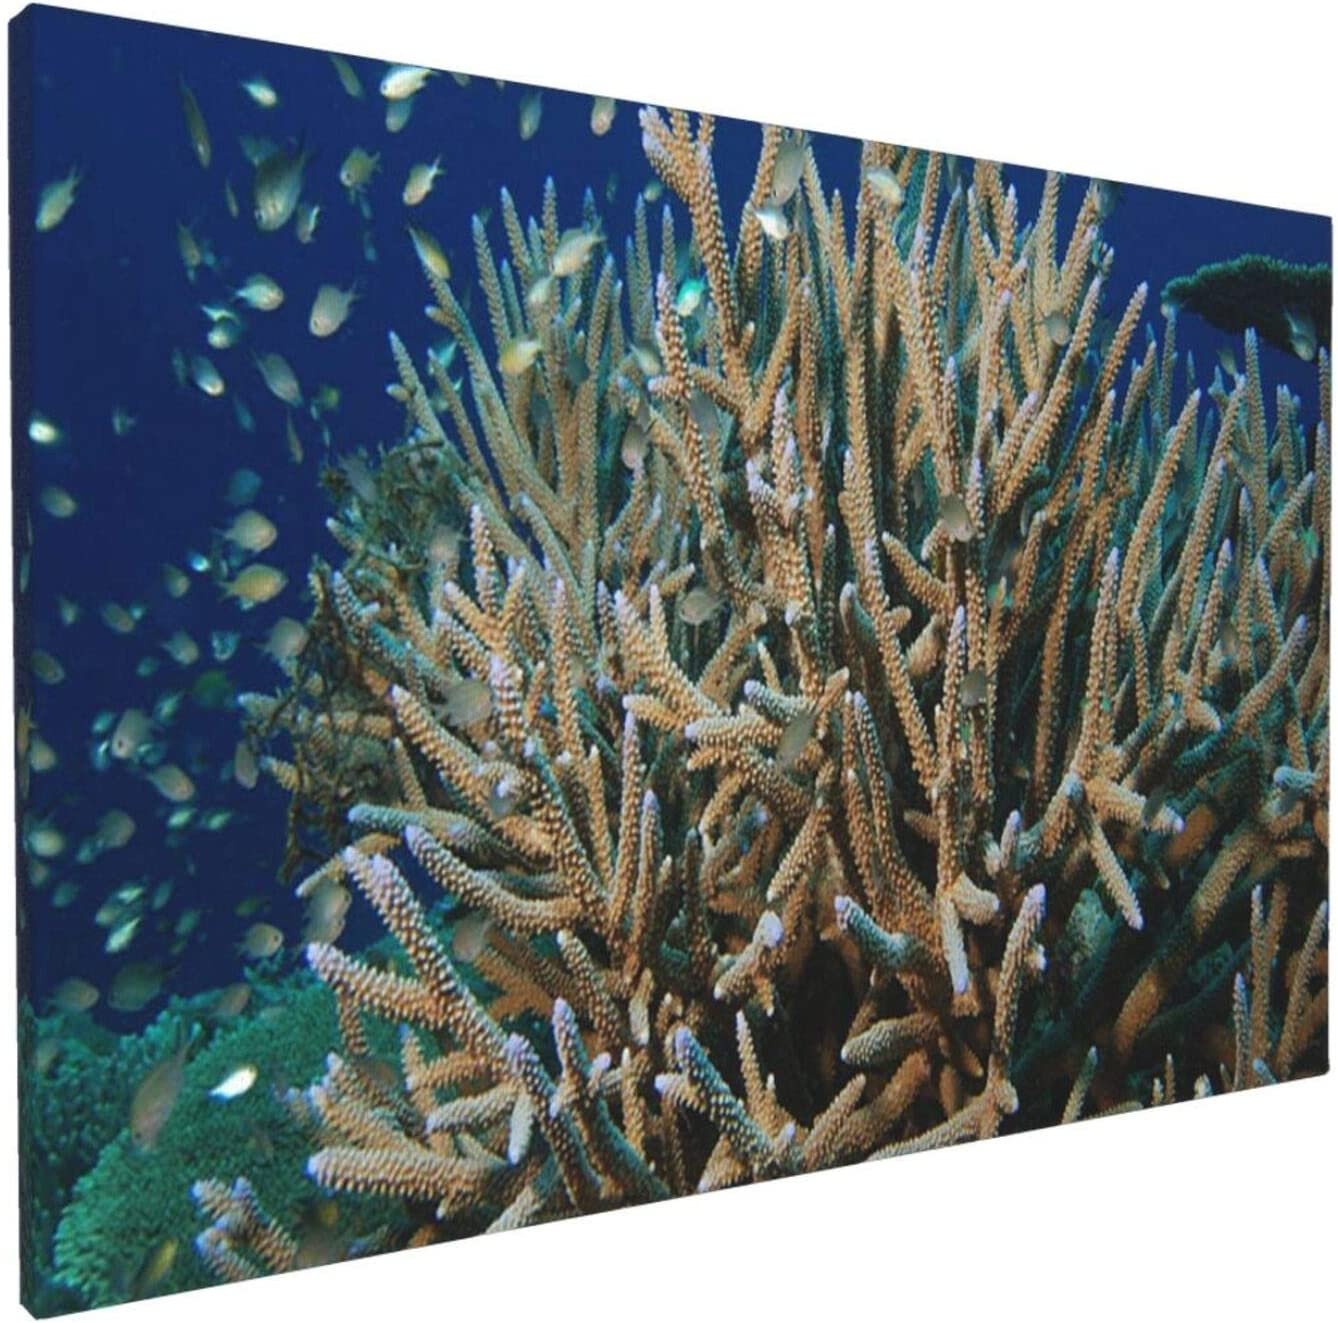 Abstract Wall Art Gallery Wall Decor, Staghorn Coral Wall Paintings, Farmhouse Decor for the Home, Wall Pictures for Living Room Frameless Wall Hanging Decor Paintings 18x12 Inch